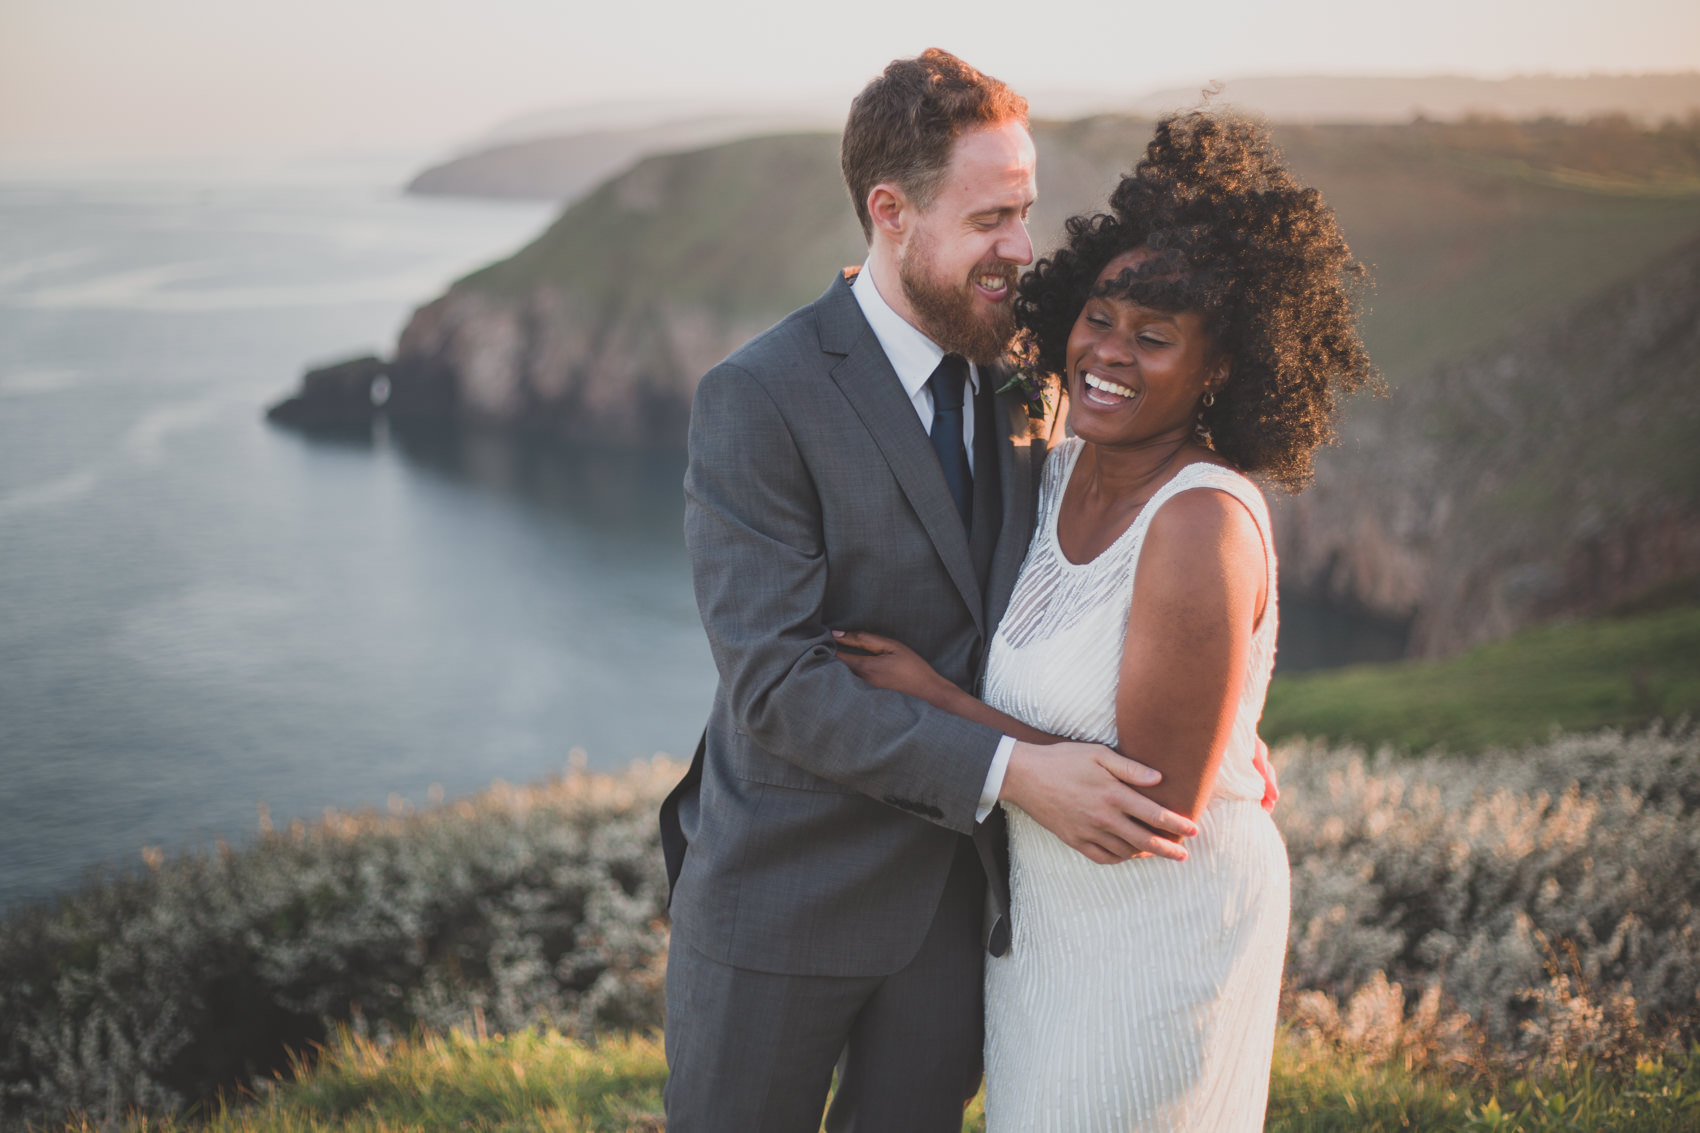 The Guardhouse Cafe Wedding Photography, The Guardhouse Brixham, wedding on Berry Head in Devon, Devon wedding photography, Berry Head in Brixham, Devon